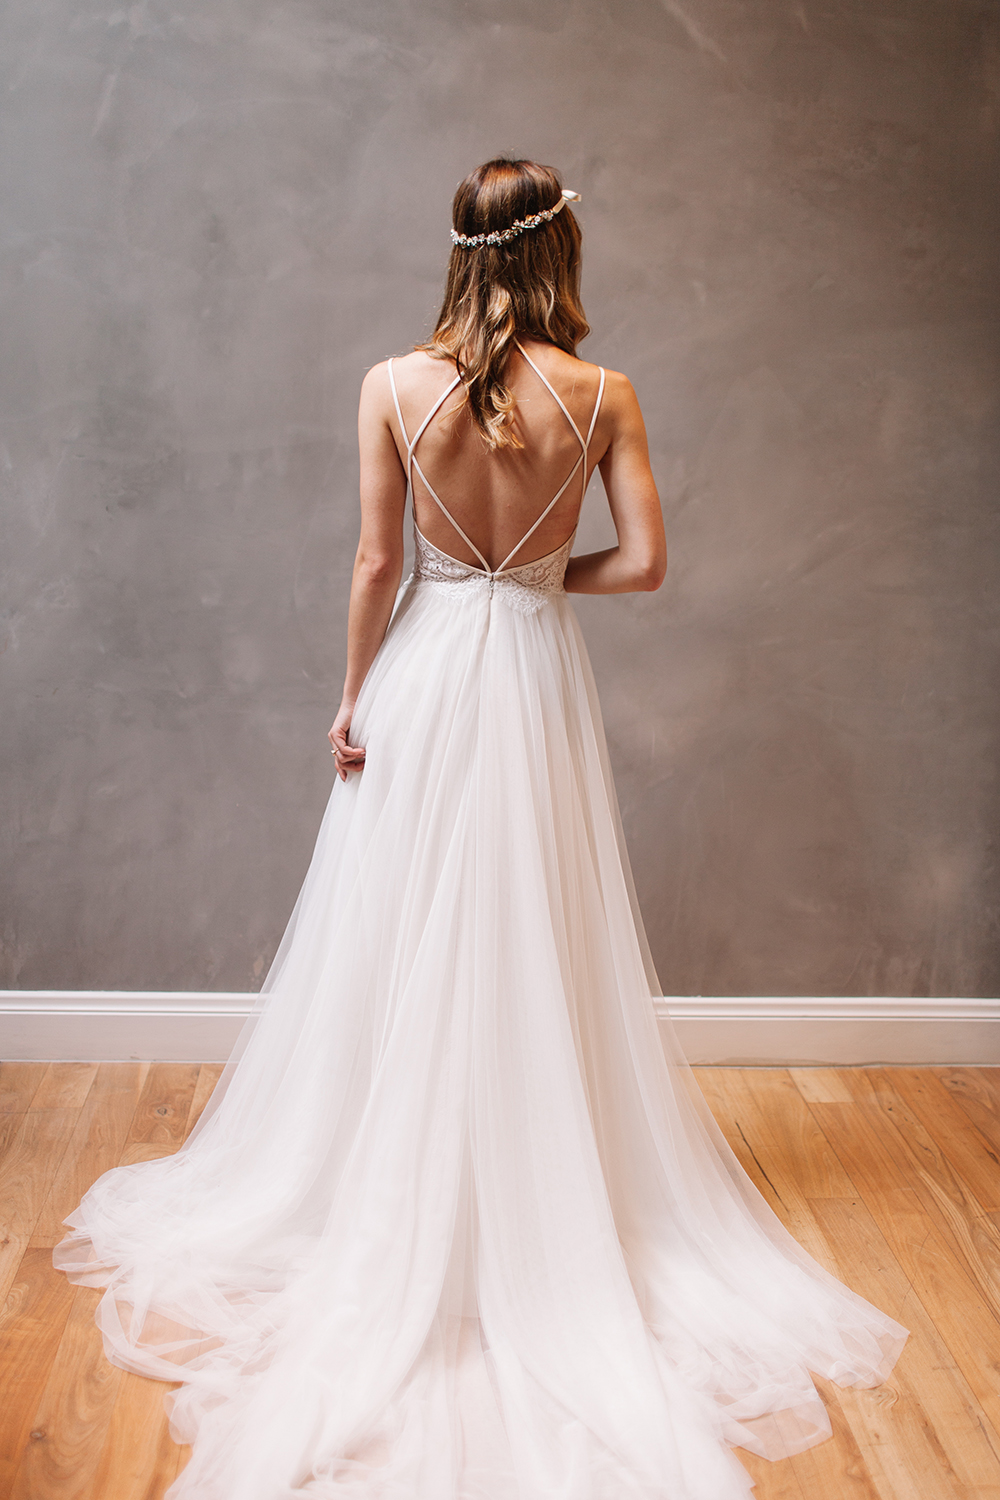 livvyland-blog-bhldn-store-front-houston-texas-bridal-salon-wedding-dress-shopping-austin-texas-fashion-blogger-olivia-watson-strappy-back-backless-open